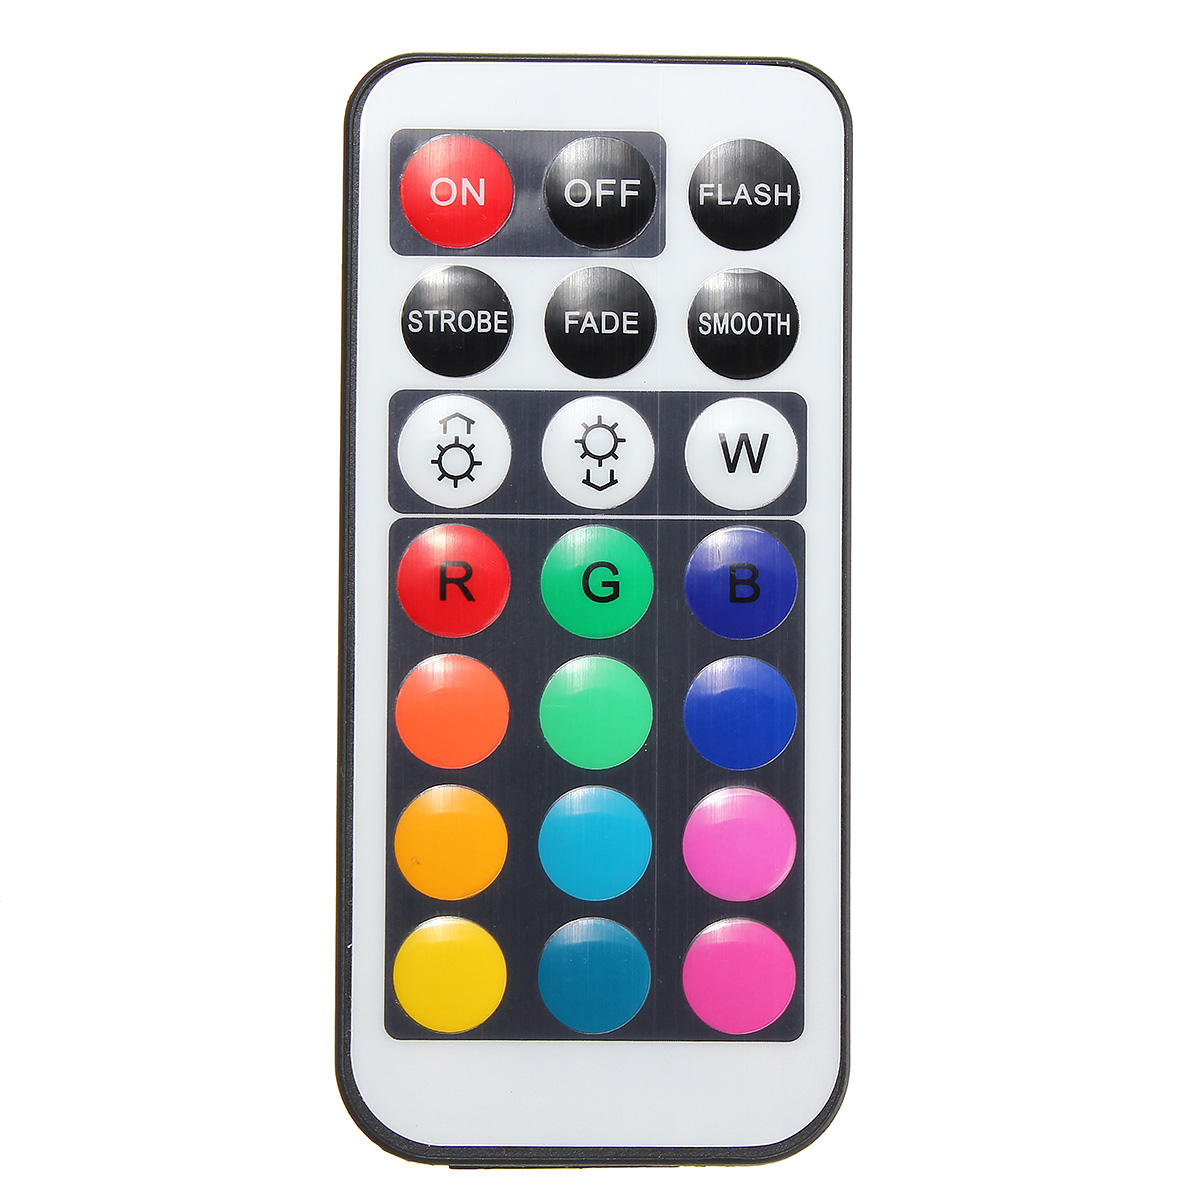 Mini 21 Keys Ir Remote Control For Led Lighting Strip Light Sale